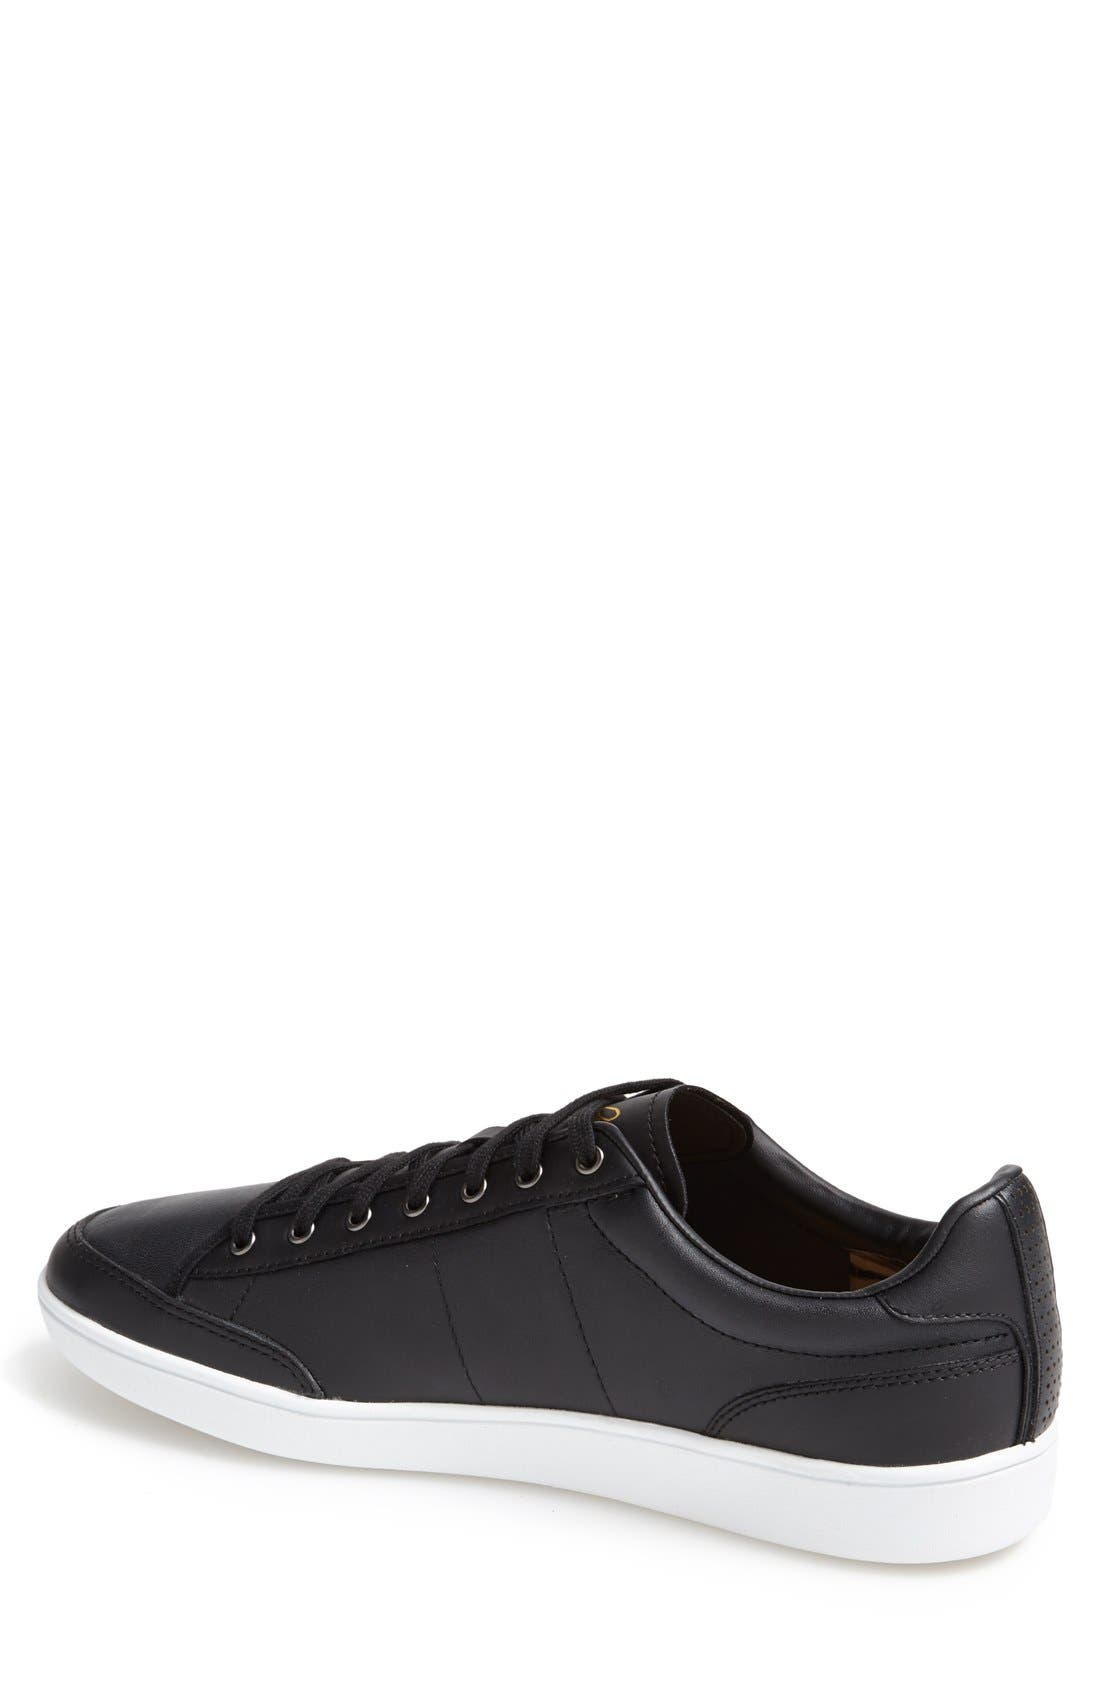 FRED PERRY,                             'Hopman' Sneaker,                             Alternate thumbnail 4, color,                             001